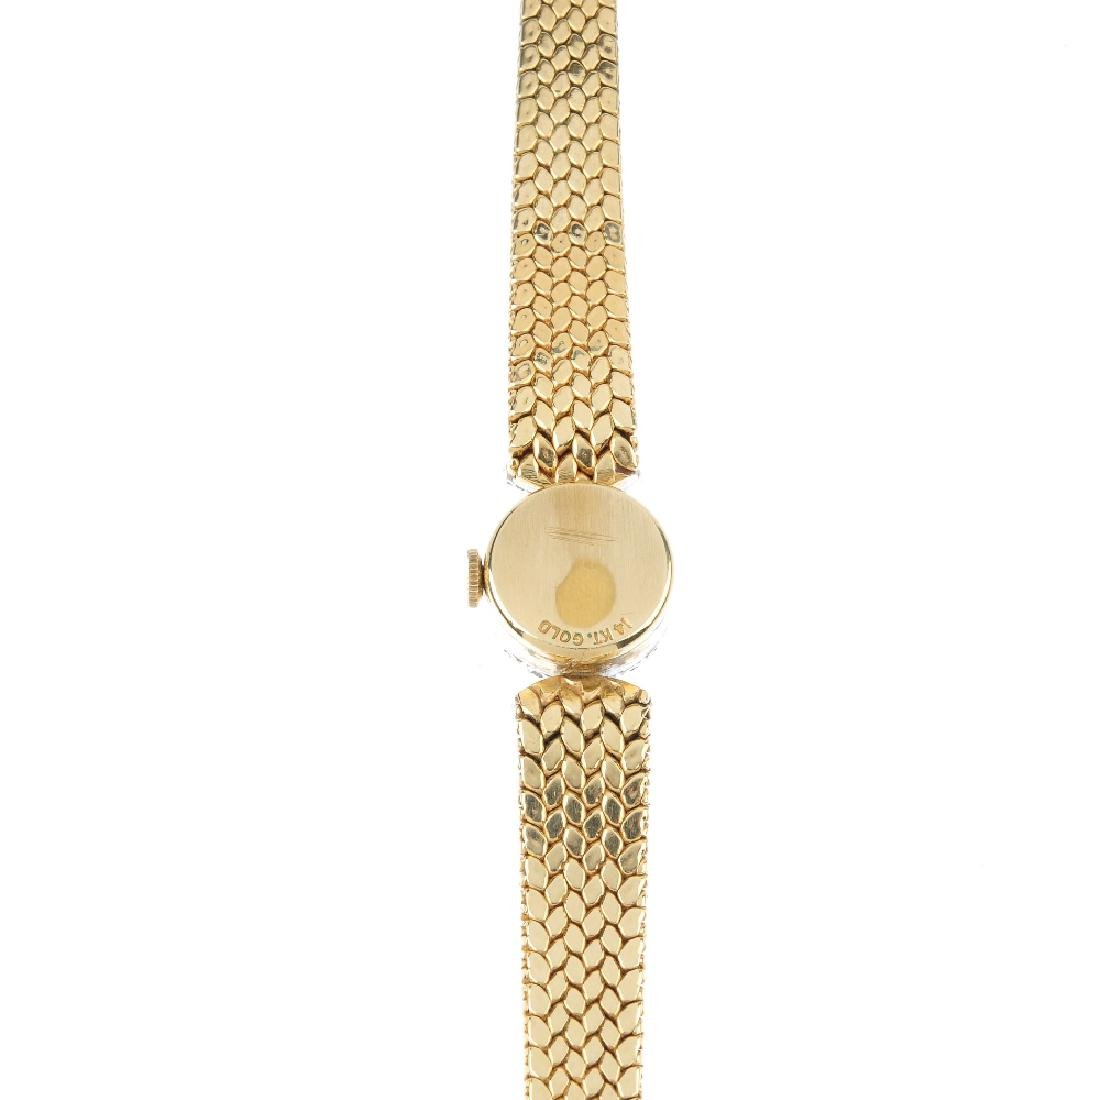 A lady's mid 20th century diamond cocktail watch. The - 2